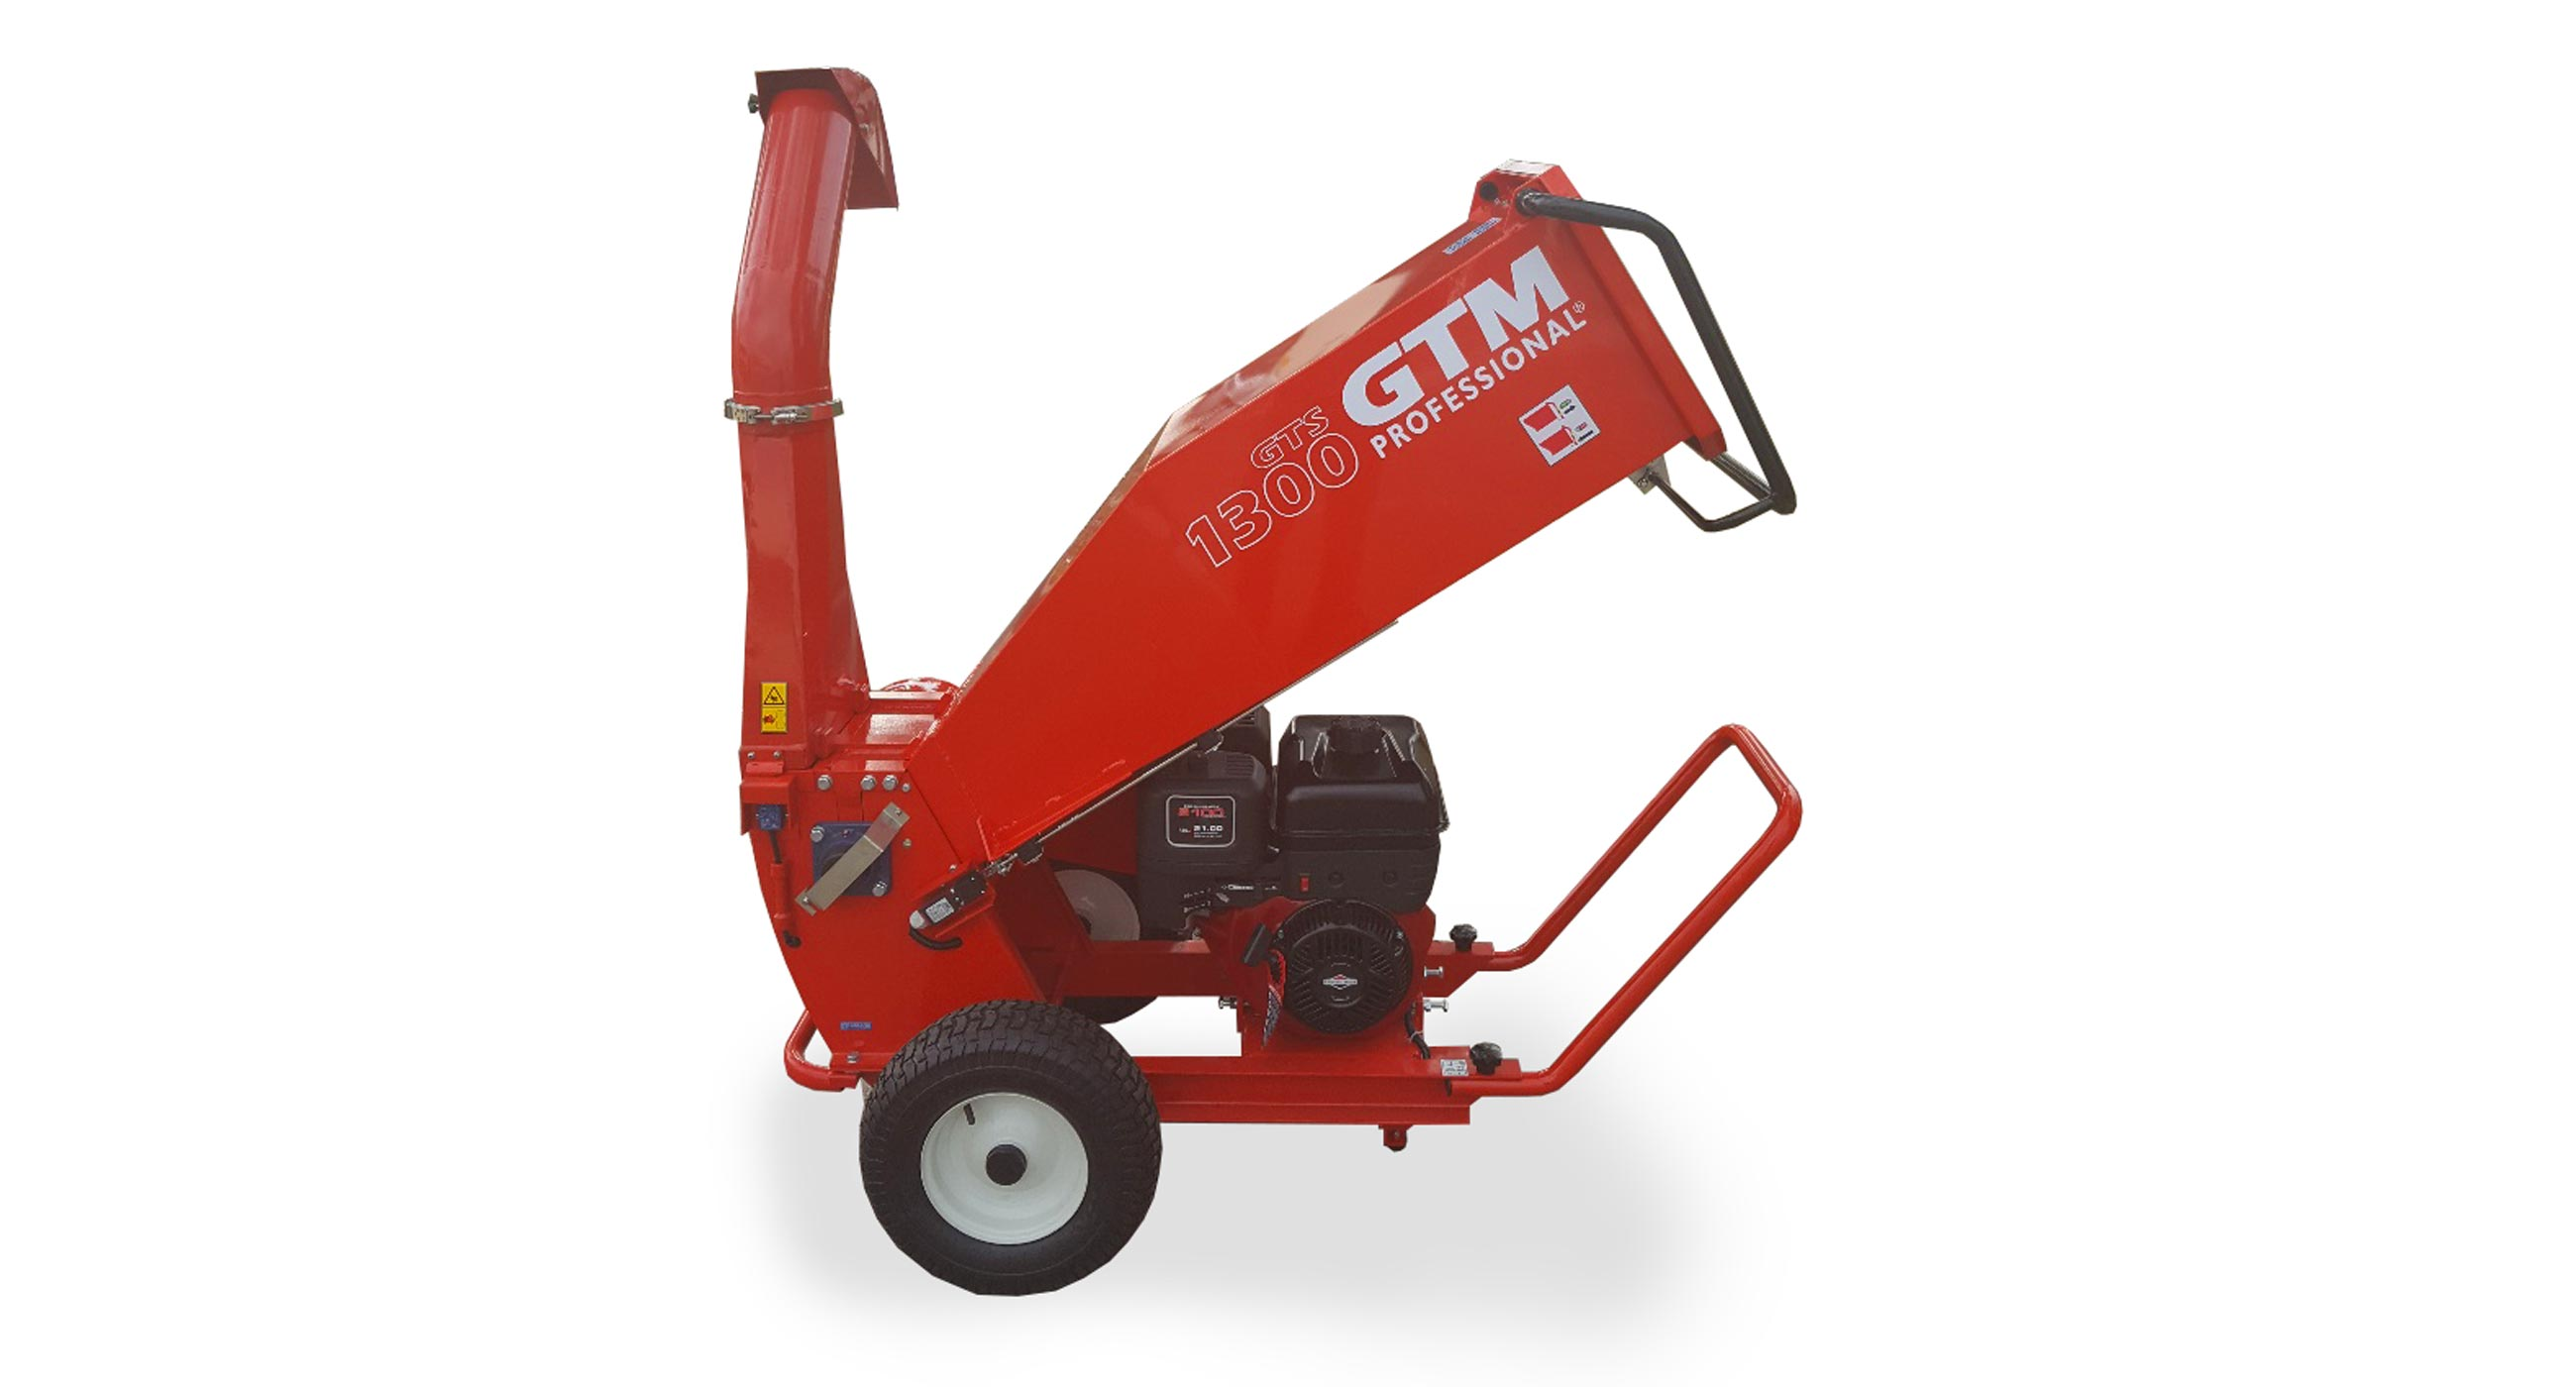 GTS1300 Advanced Chipper Mulcher